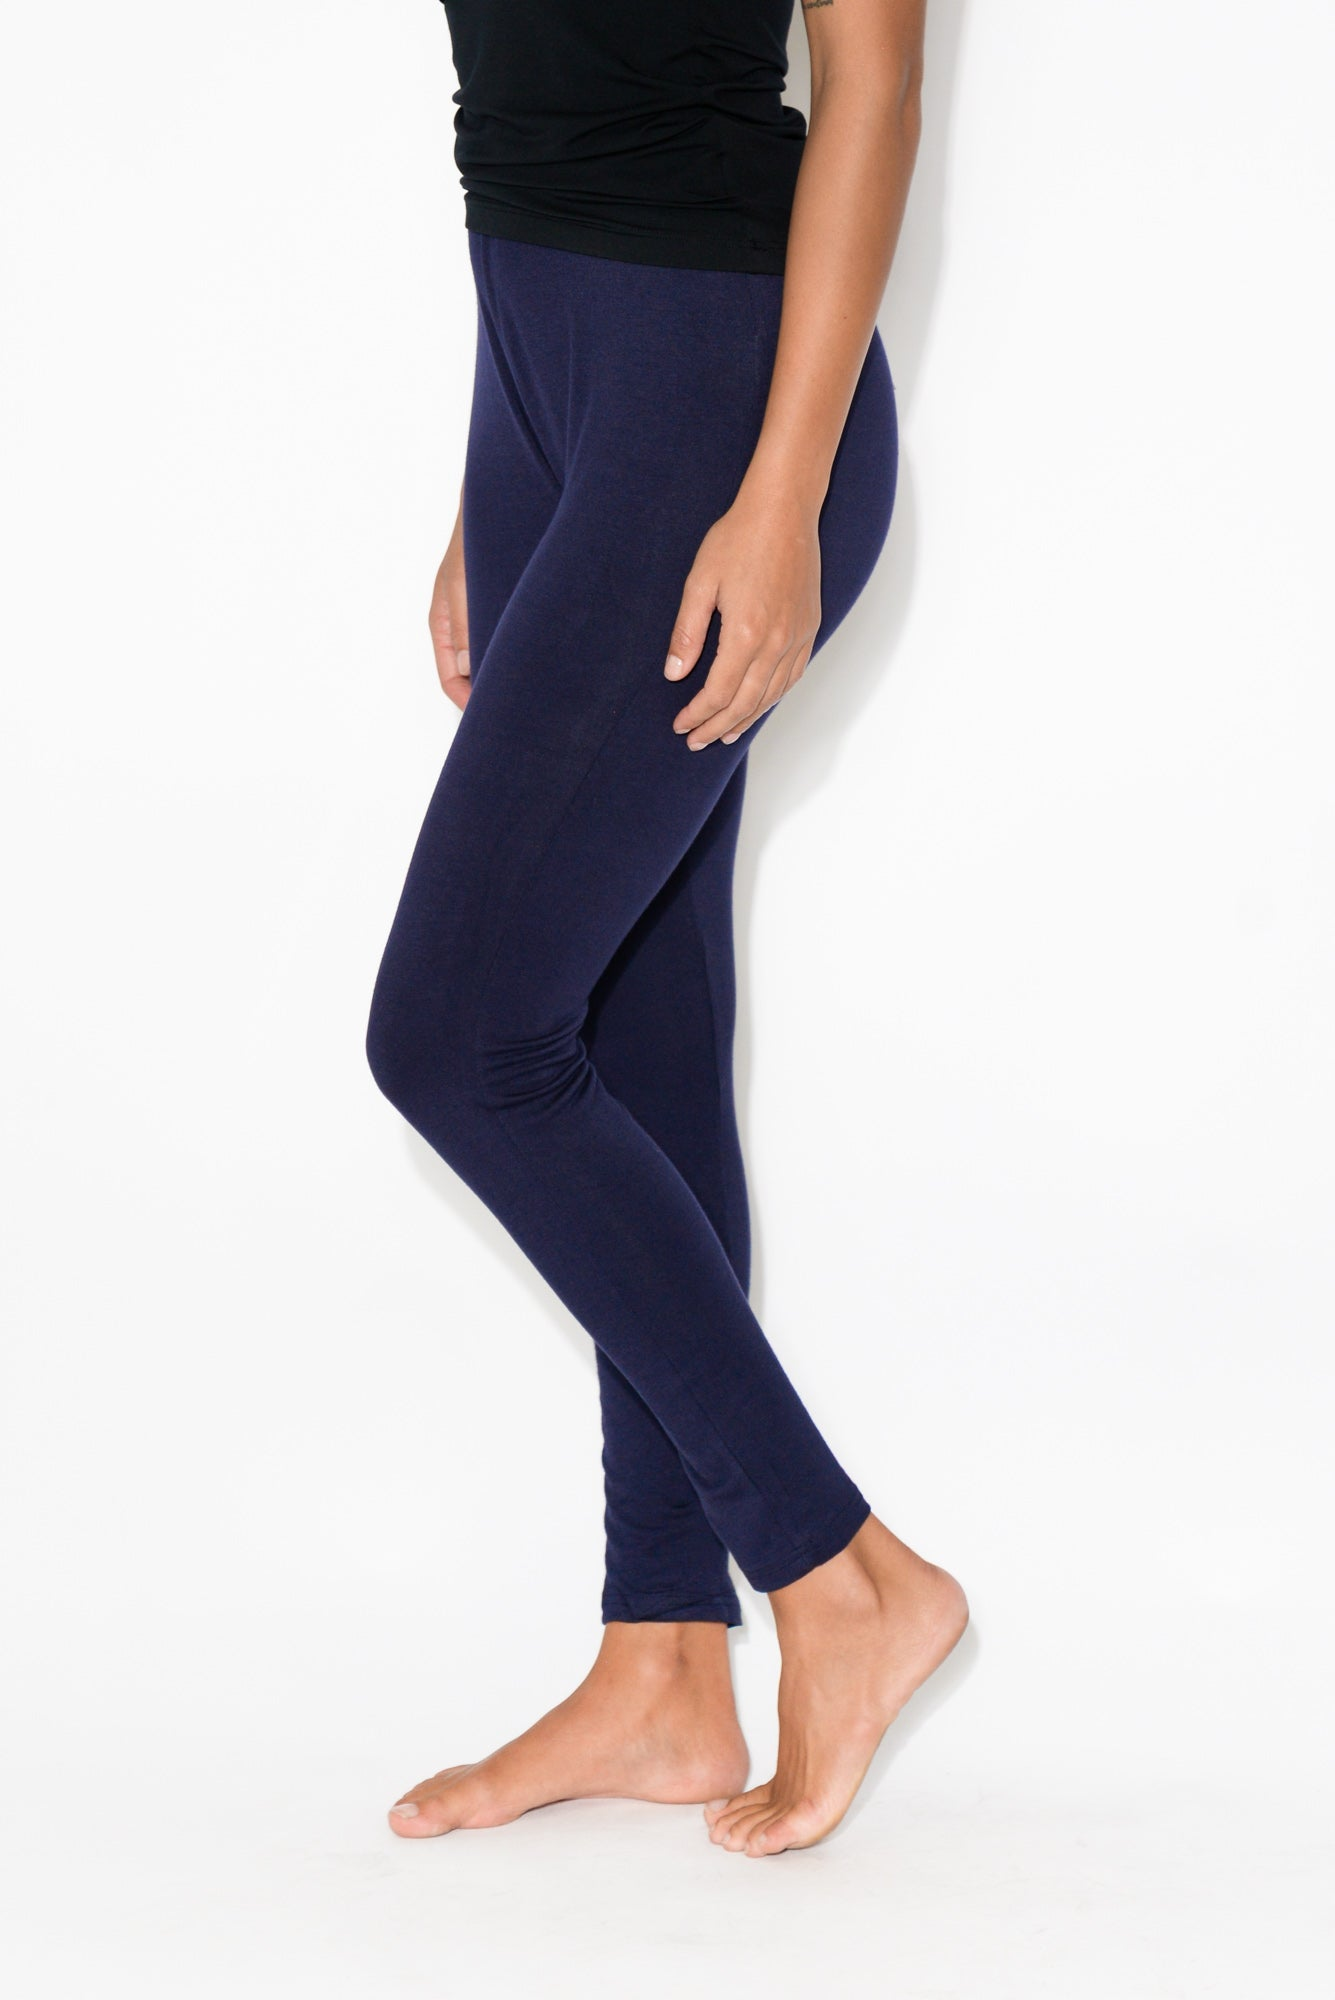 Jane Navy Stretch Legging